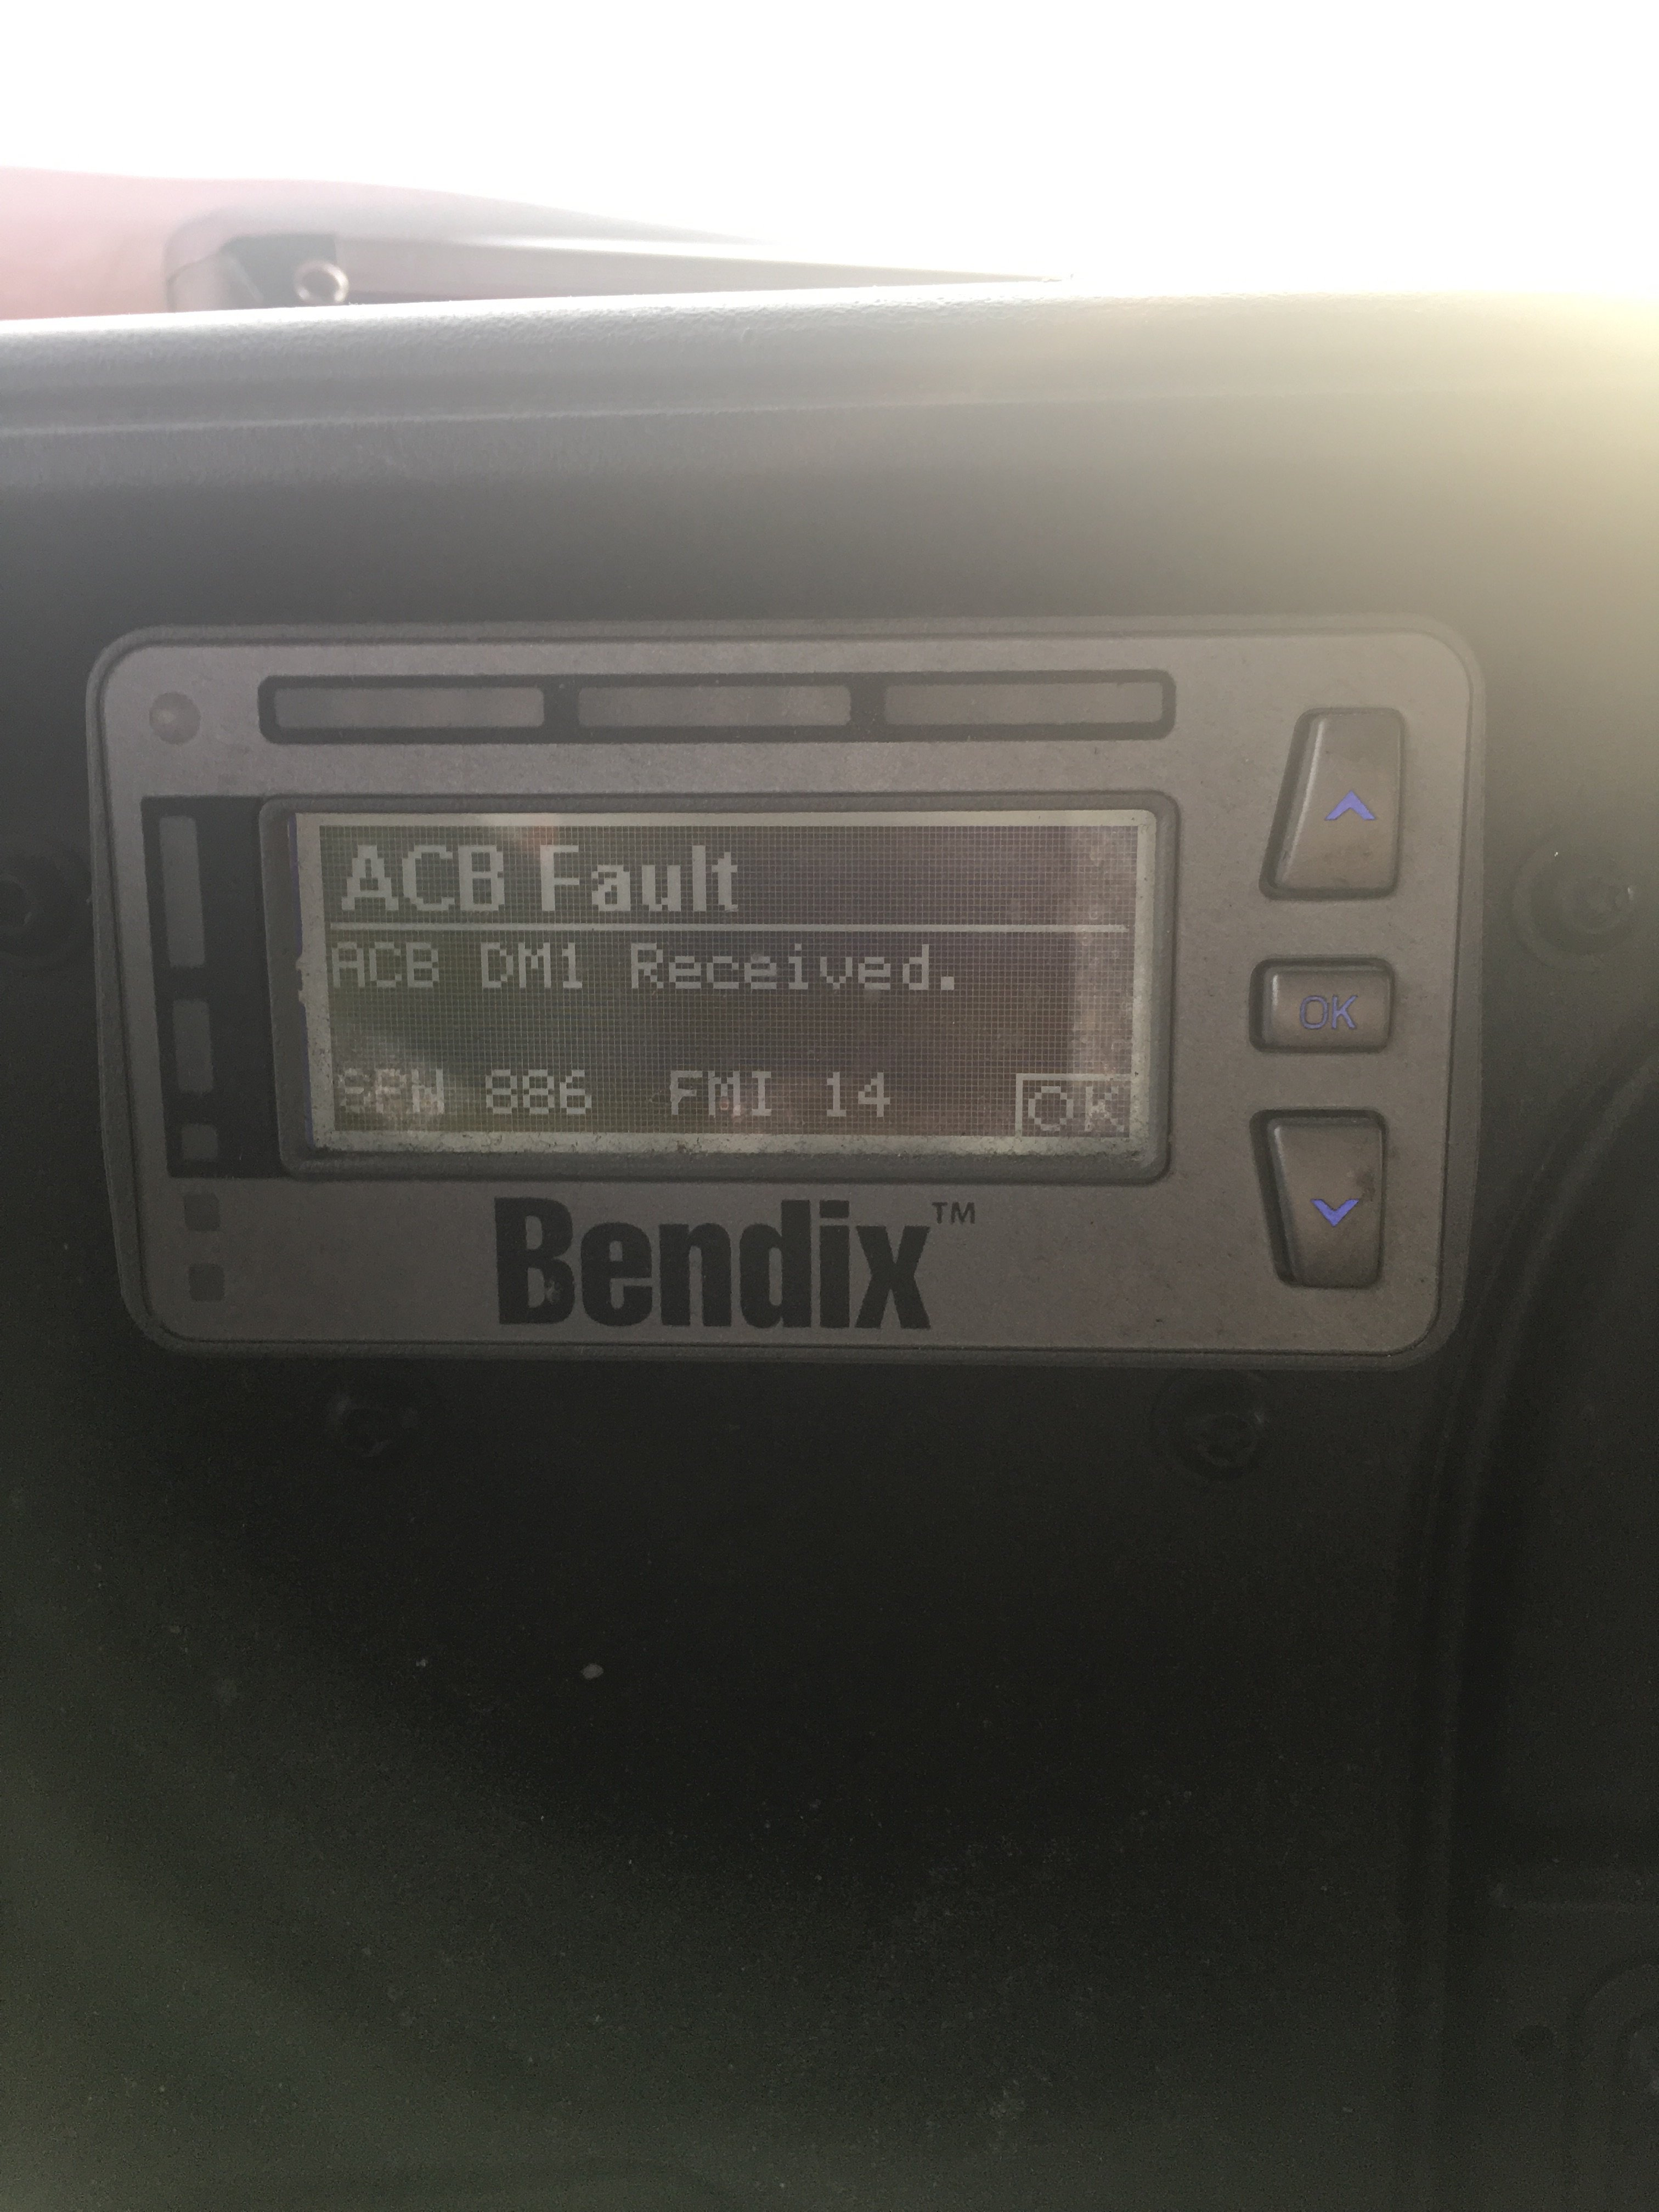 Bendix Wingman system is still throwing a fault code after